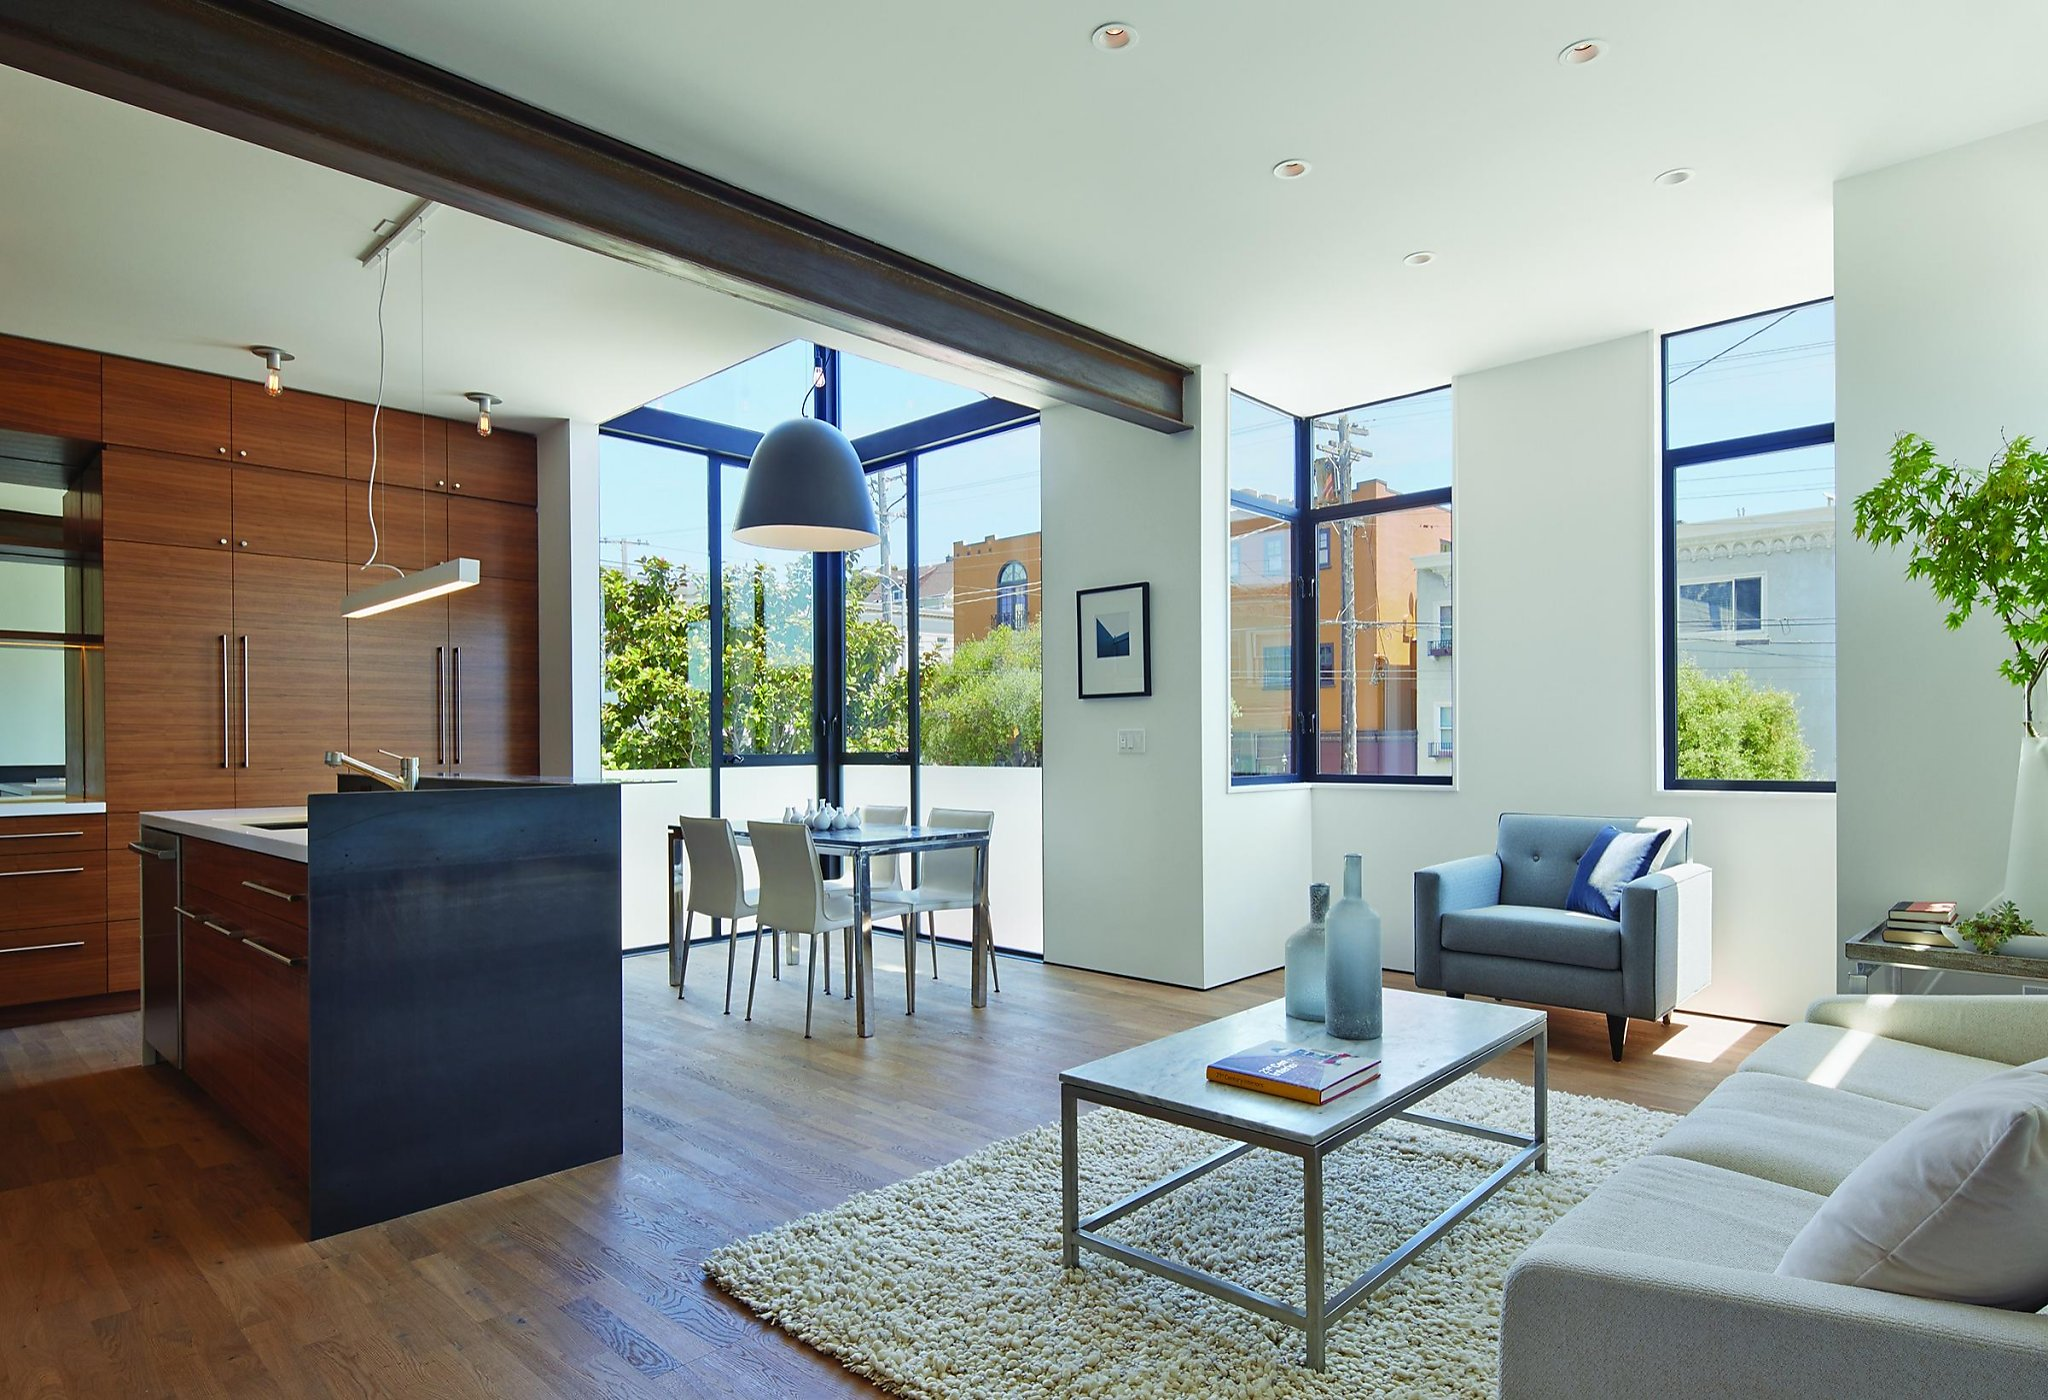 Bay Area Architects, Designers Build Creatively Under